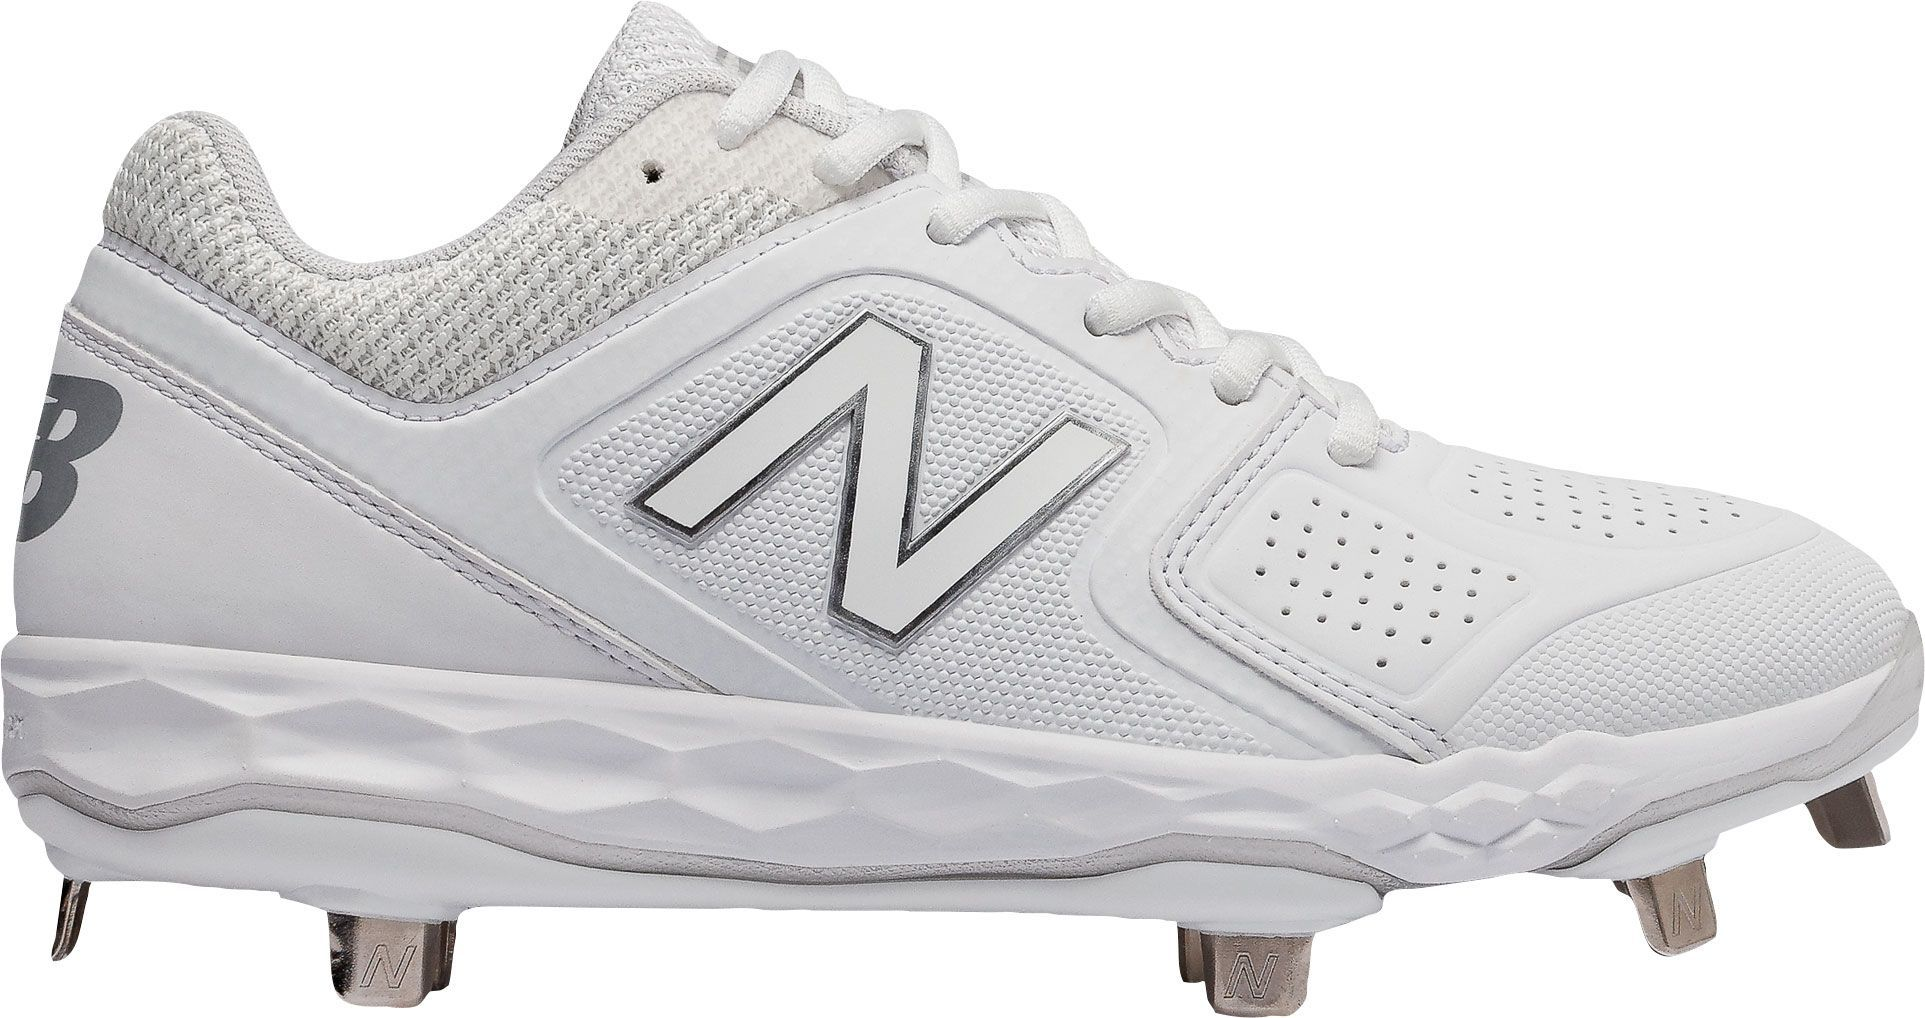 c6a3a4b6b New Balance Women s Fresh Foam Velo 1 Metal Fastpitch Softball Cleats